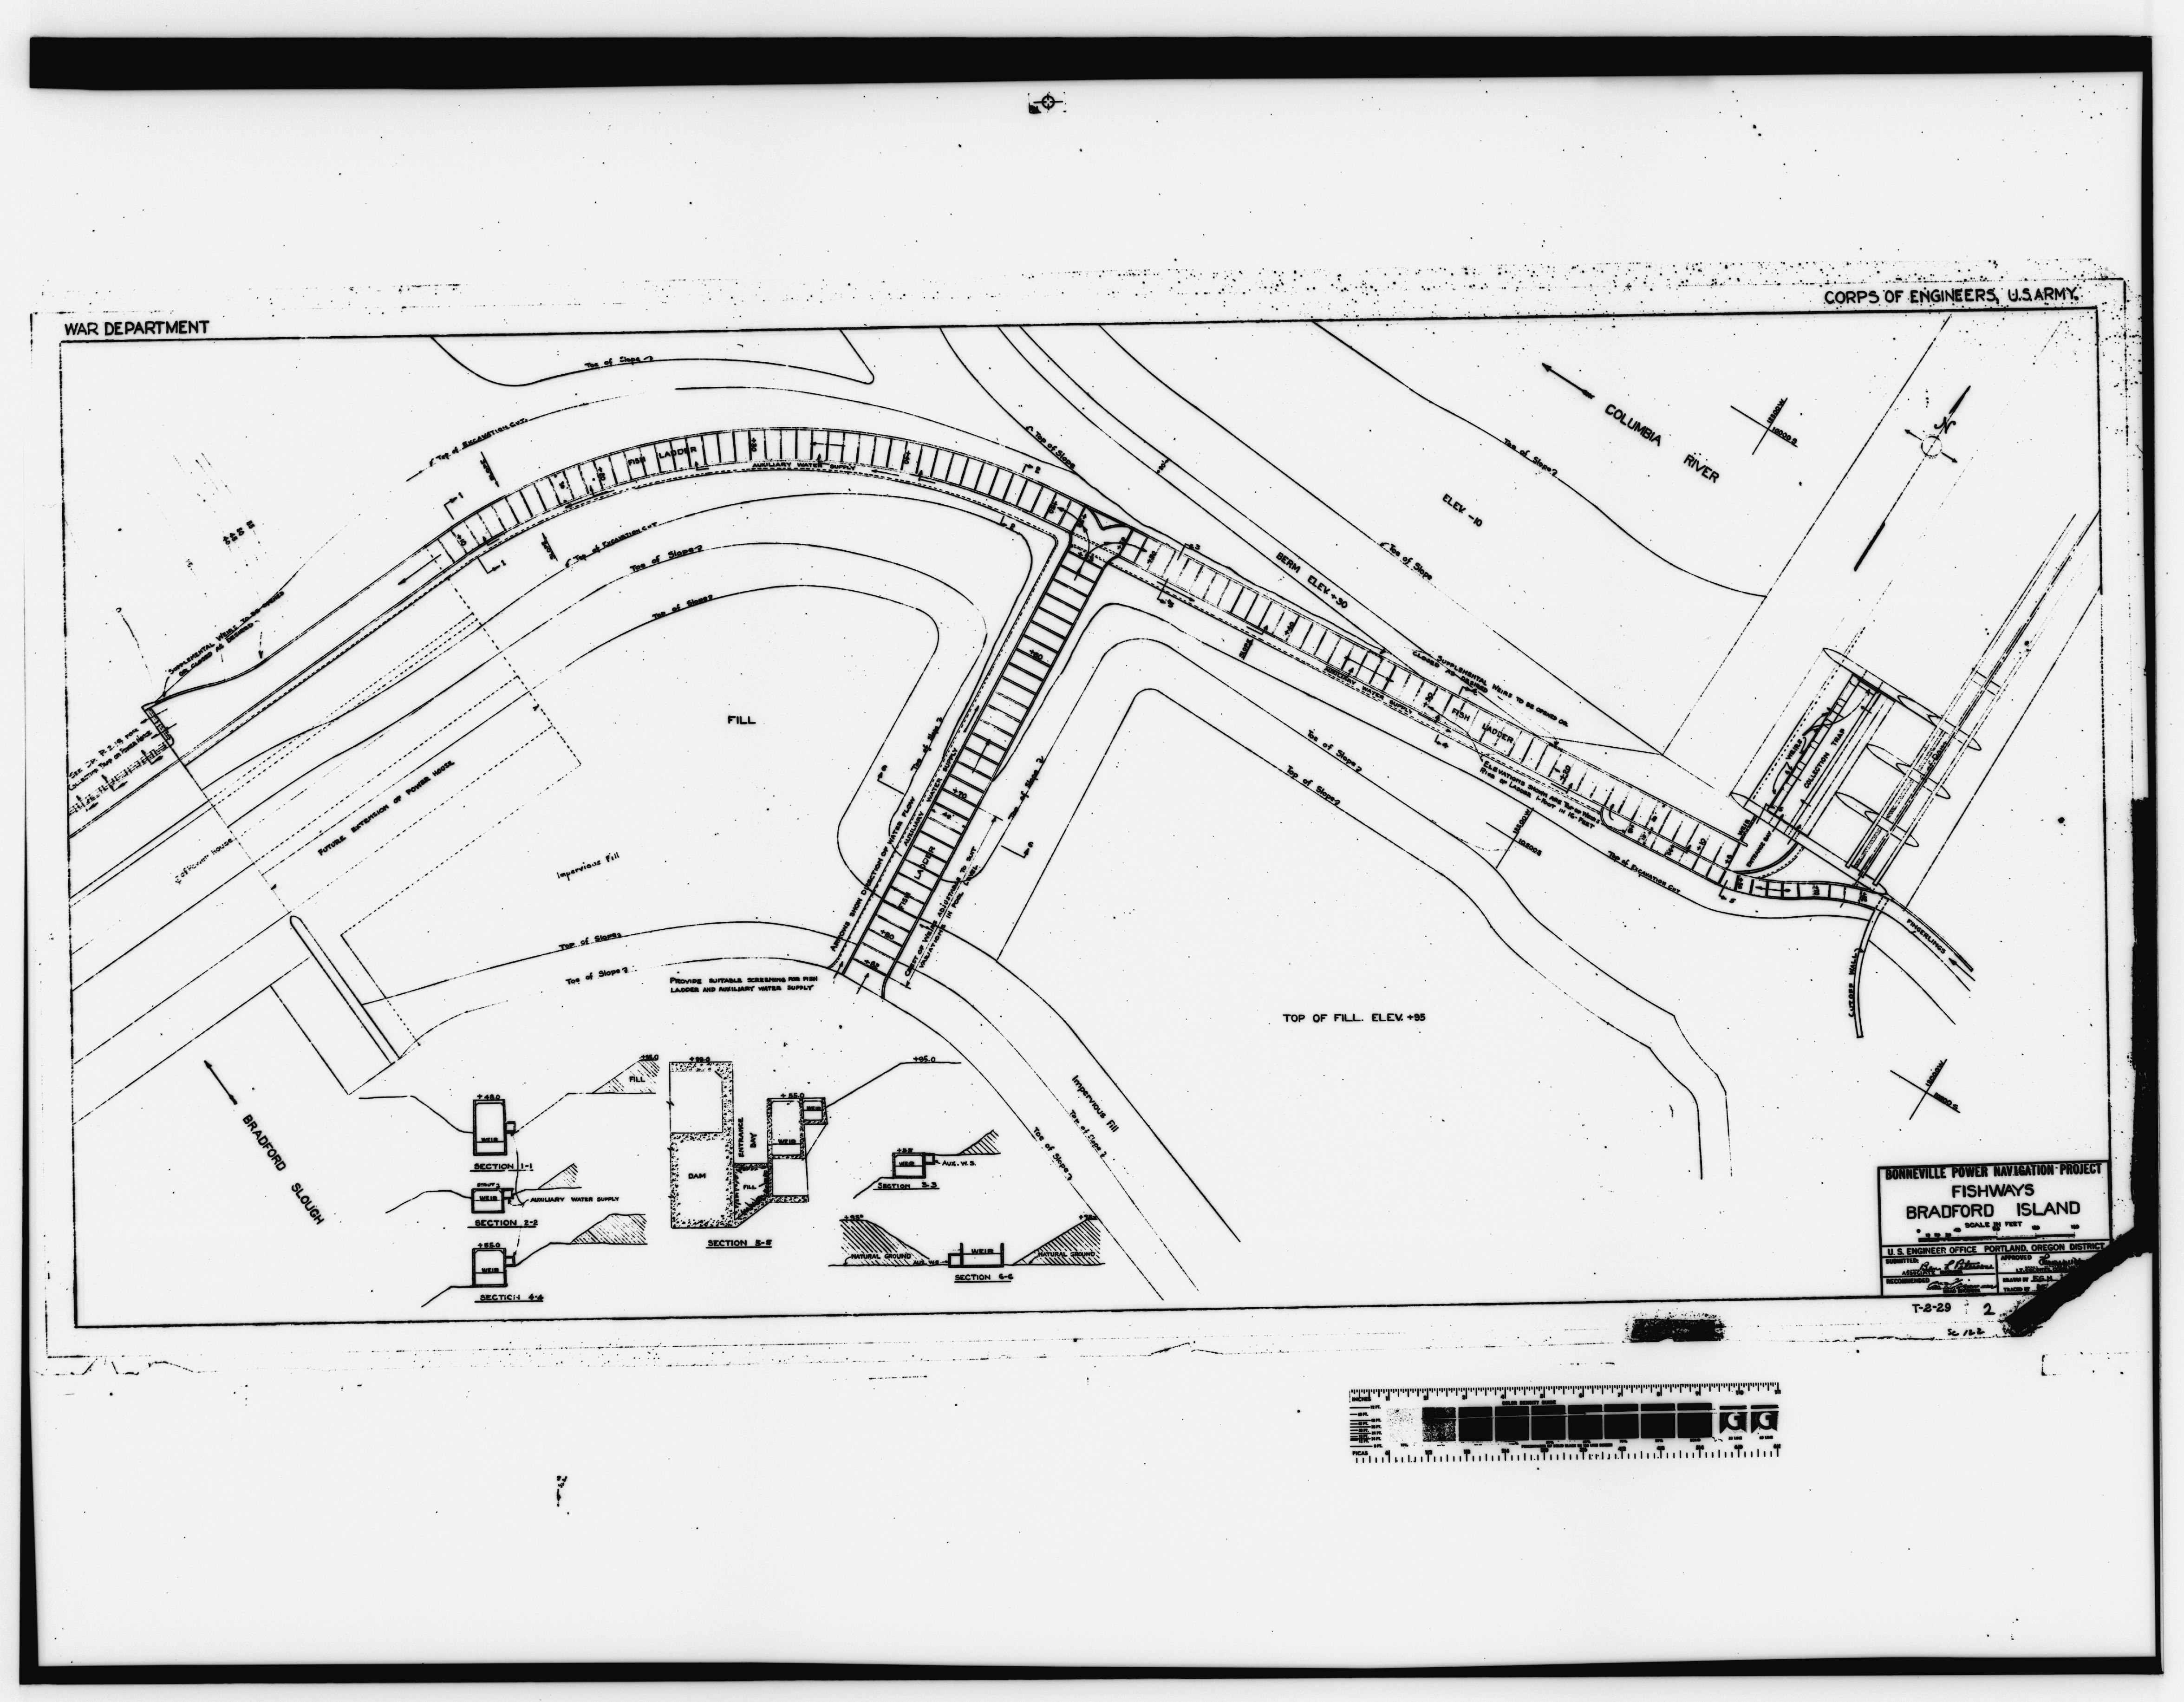 File Photocopy Of Original Construction Drawing Date